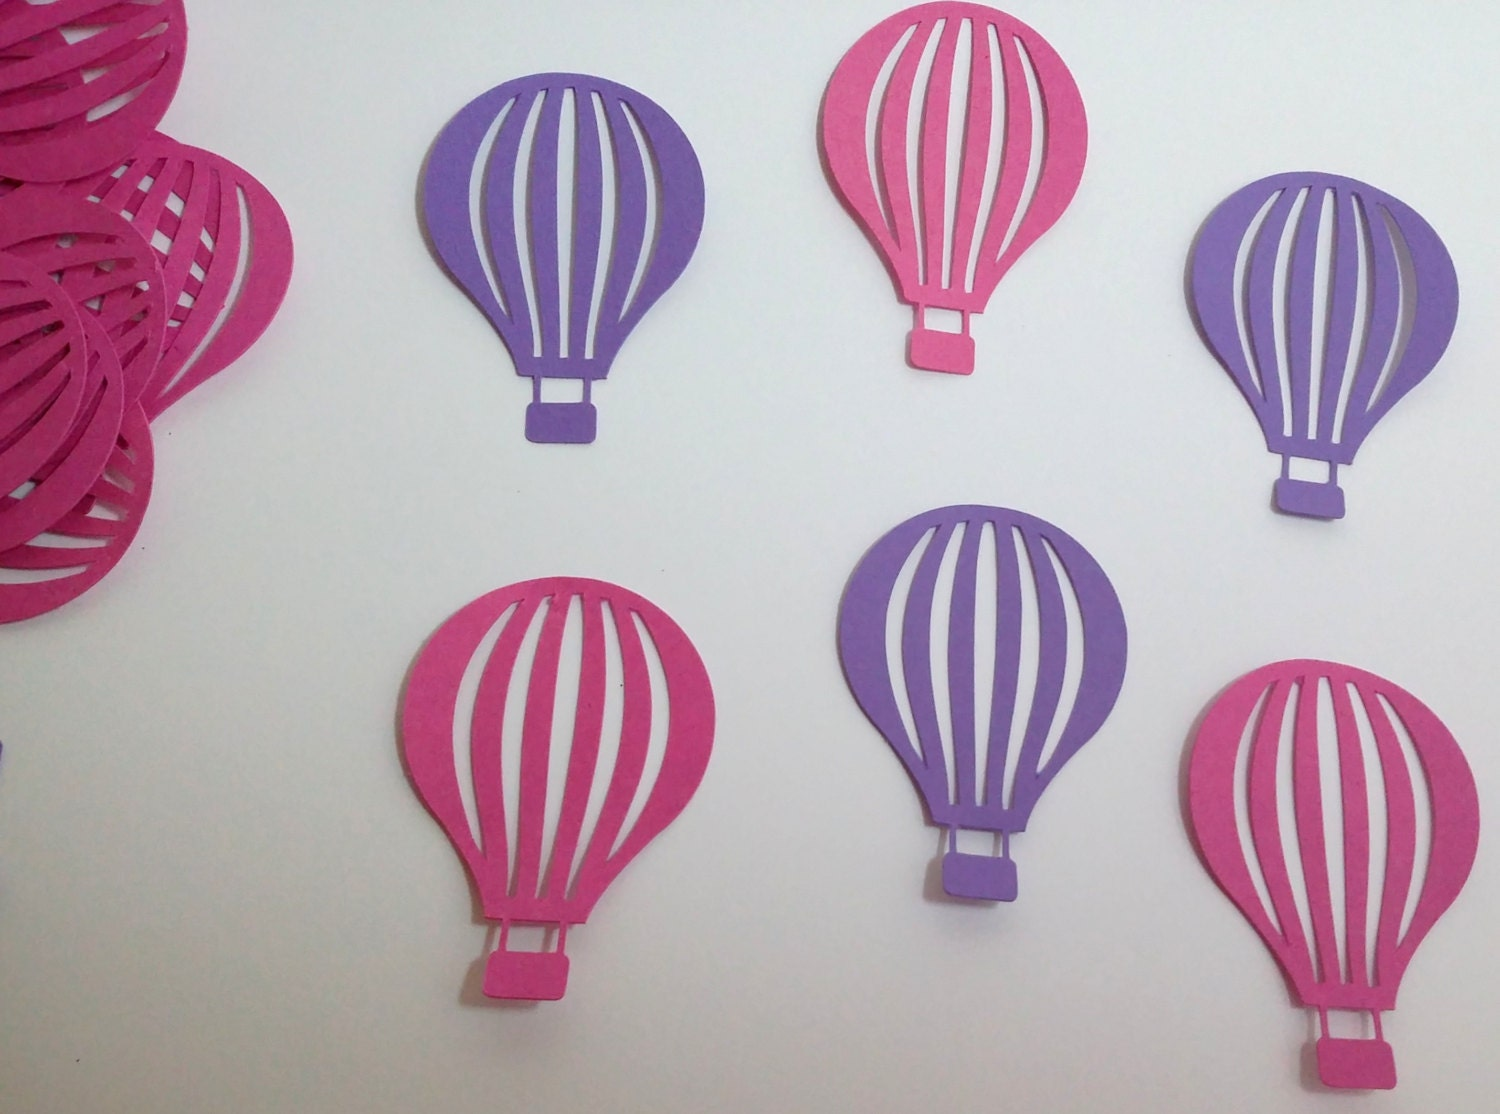 60 Large Hot Air Balloon Die Cut By PennysCraftSupplies On